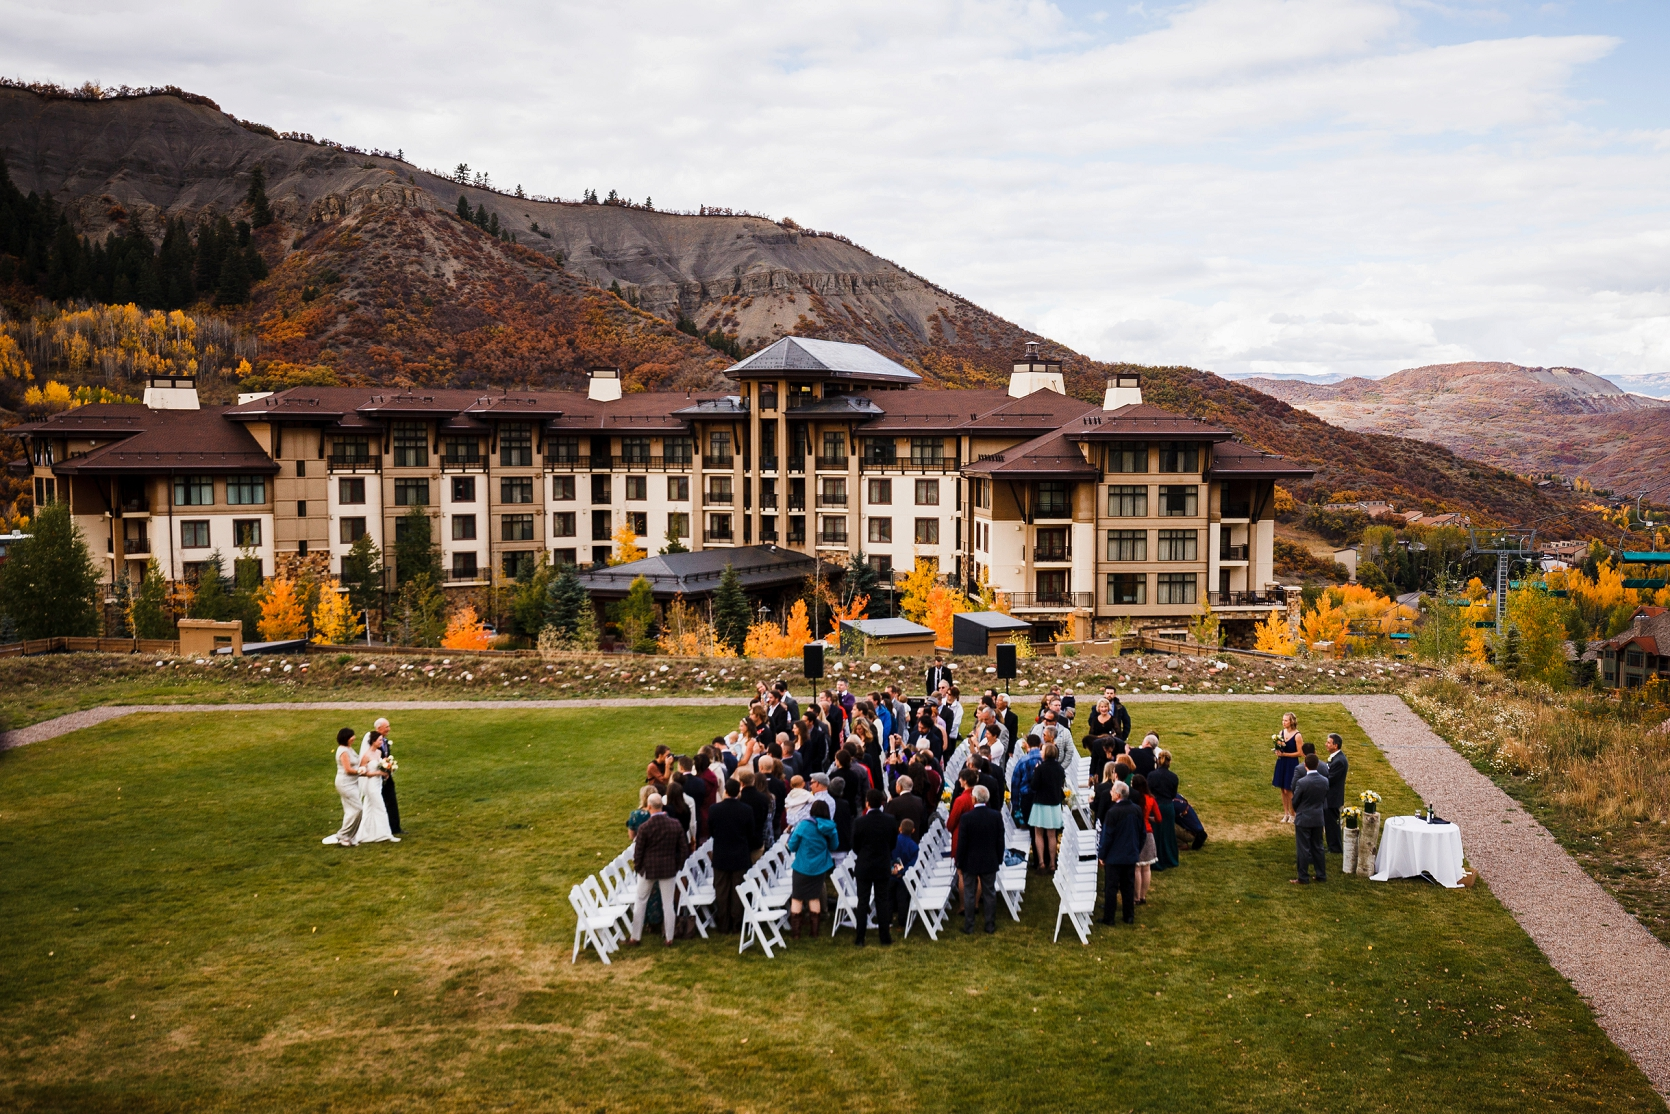 Jake Amp Jen S Viceroy Snowmass Wedding Top Colorado